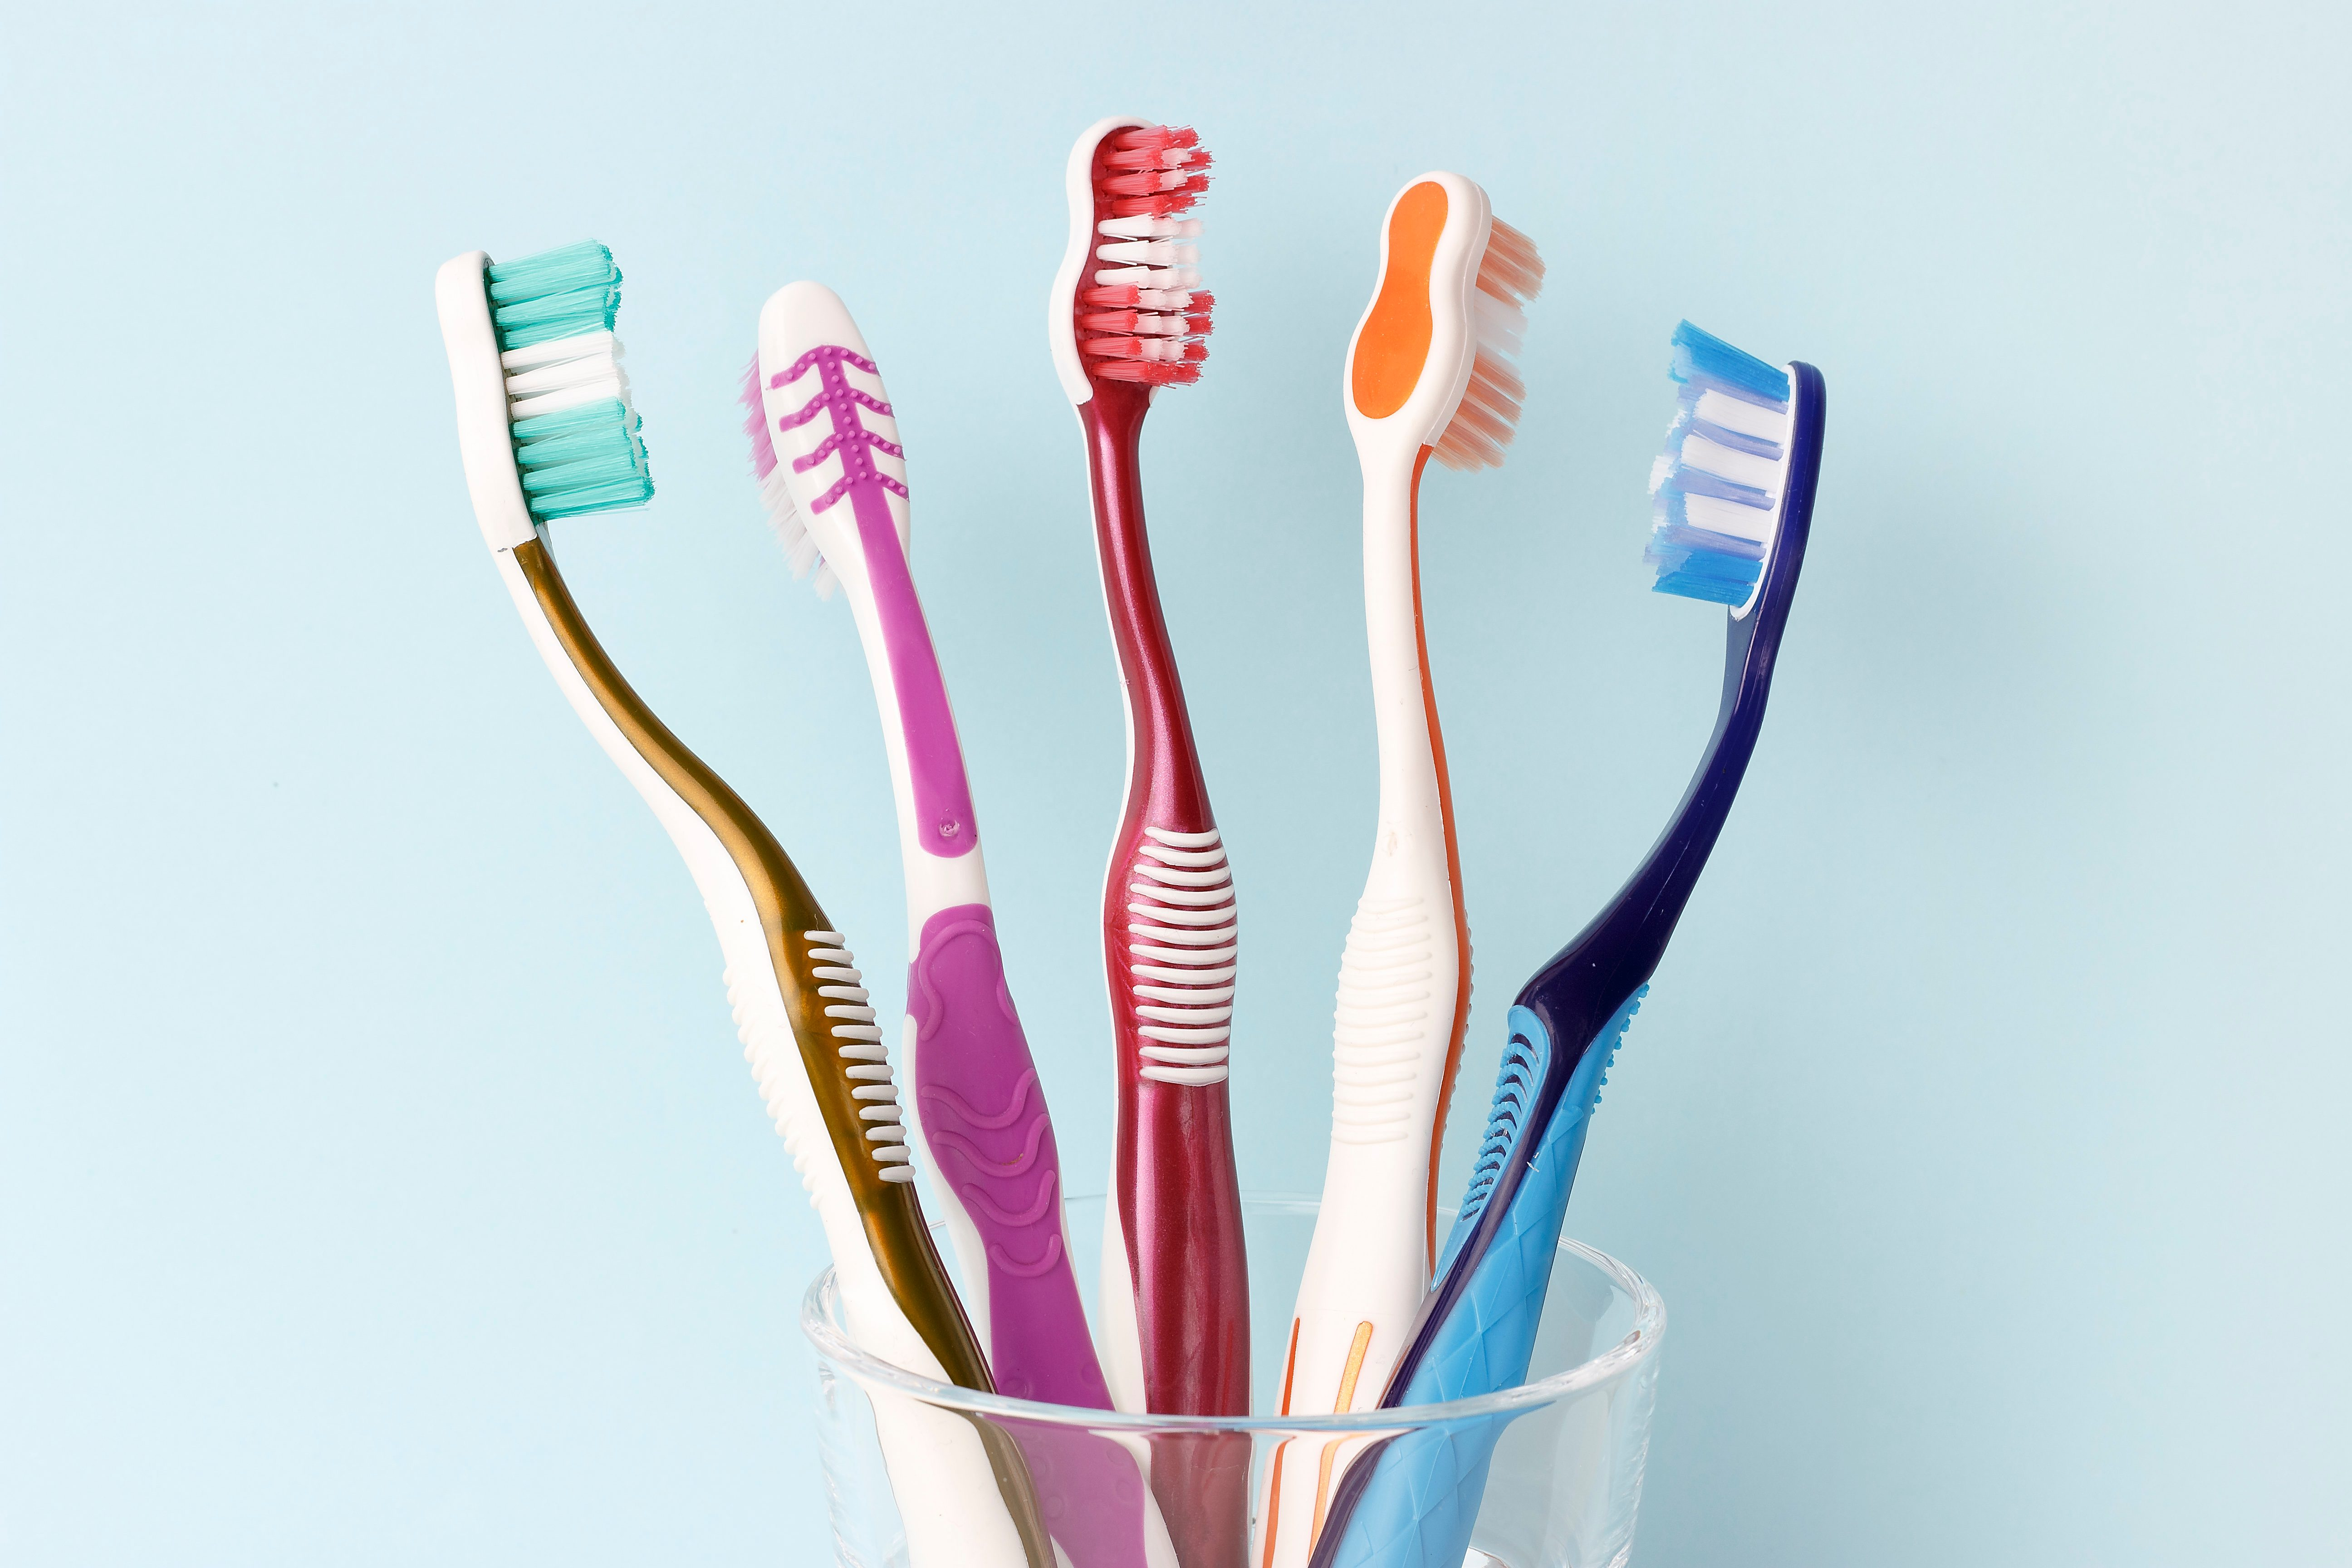 Multicolored toothbrushes in a glass cup front view, blue background